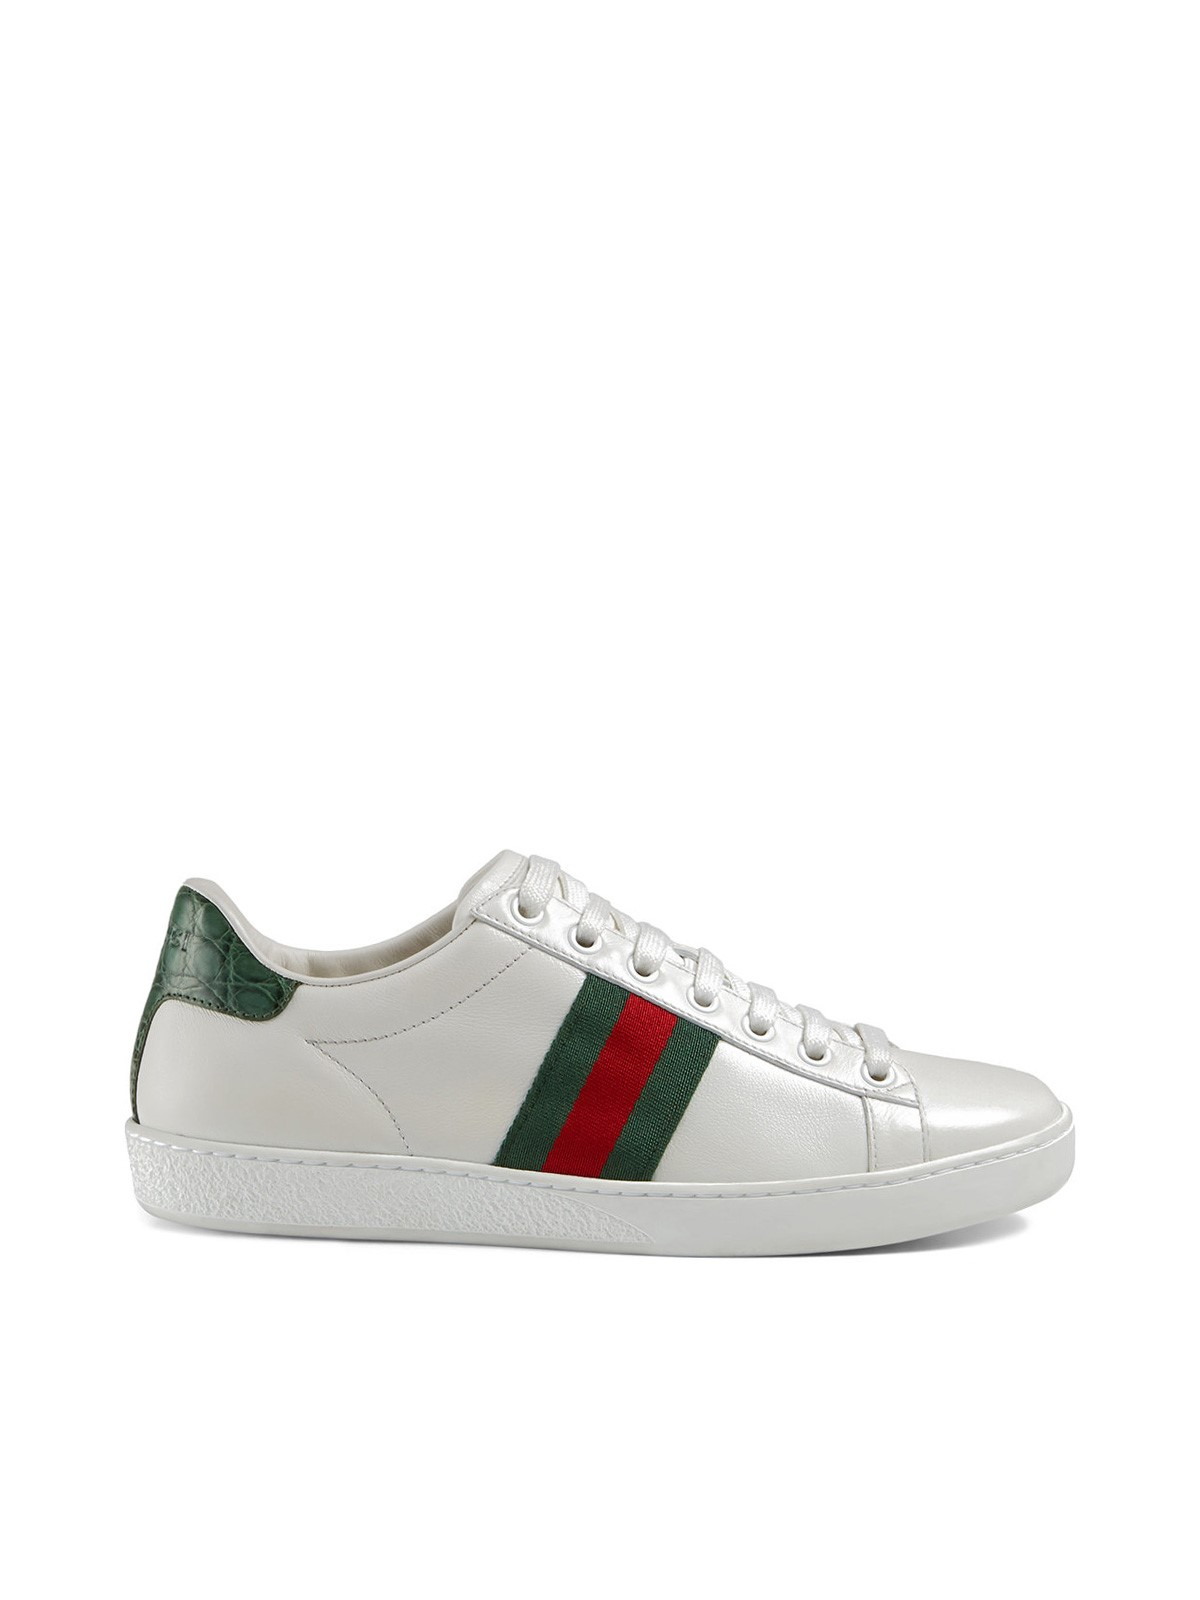 970c6e19f gucci ACE SNEAKERS available on montiboutique.com - 23021